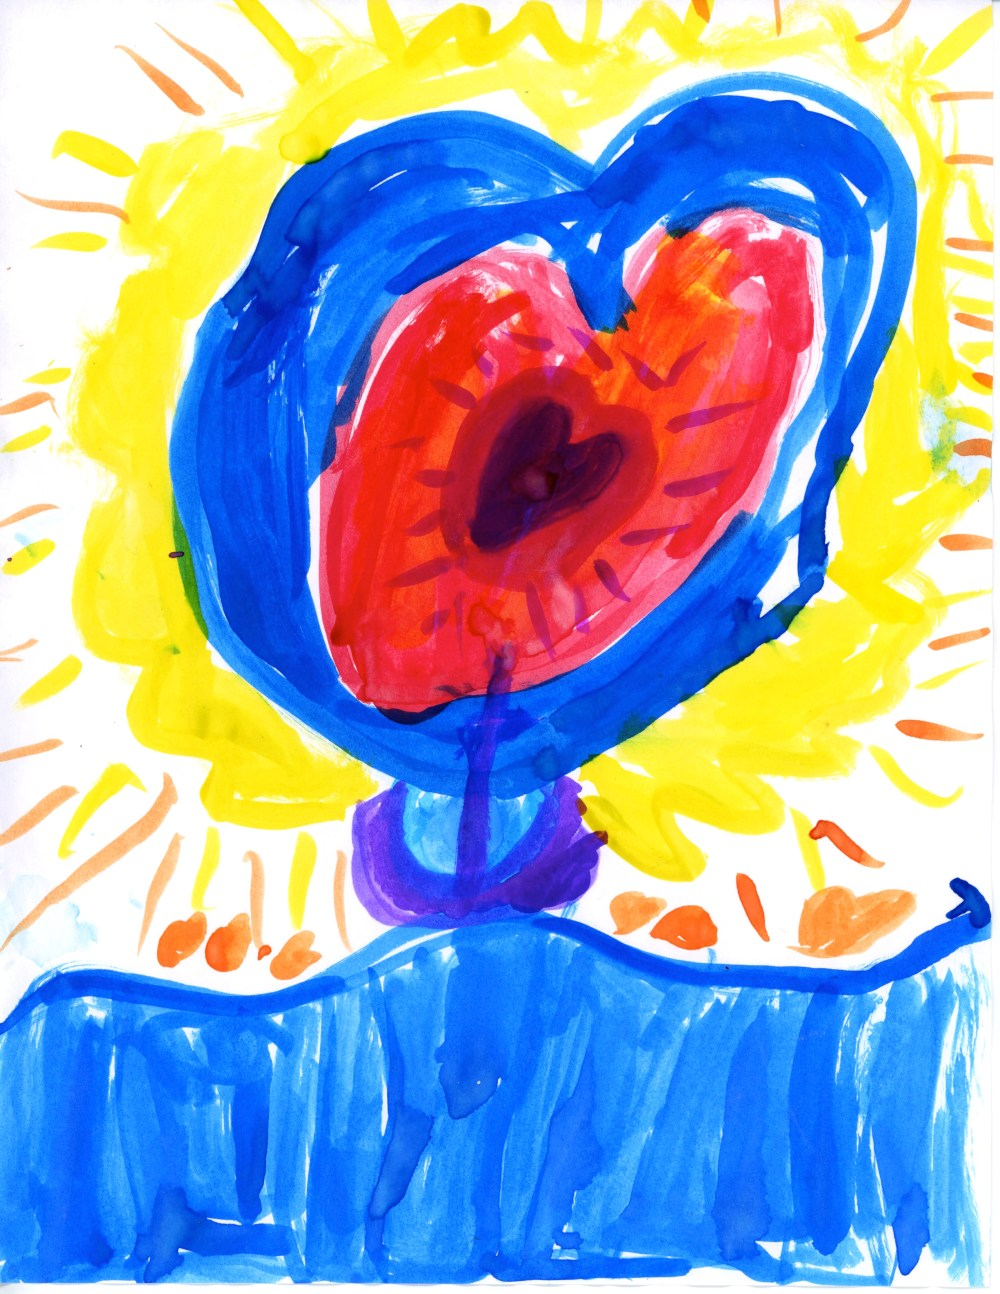 Open Heart by Paloma, age 5?